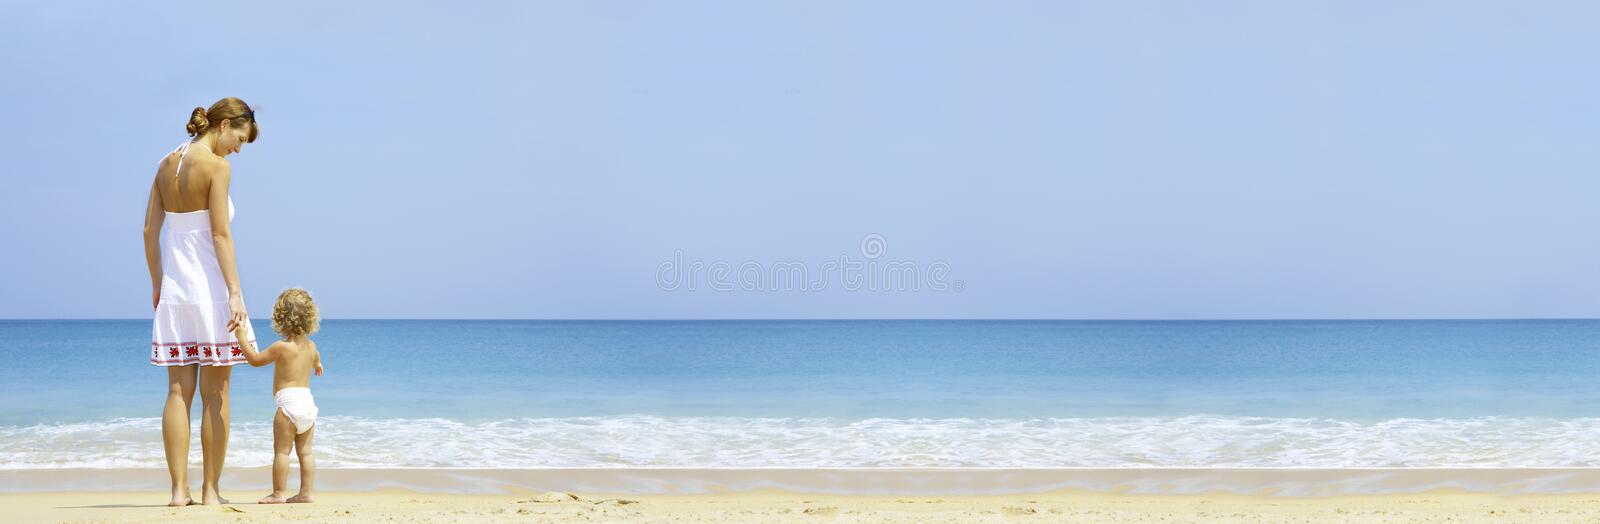 Download Beach Banner Royalty Free Stock Images - Image: 6312429